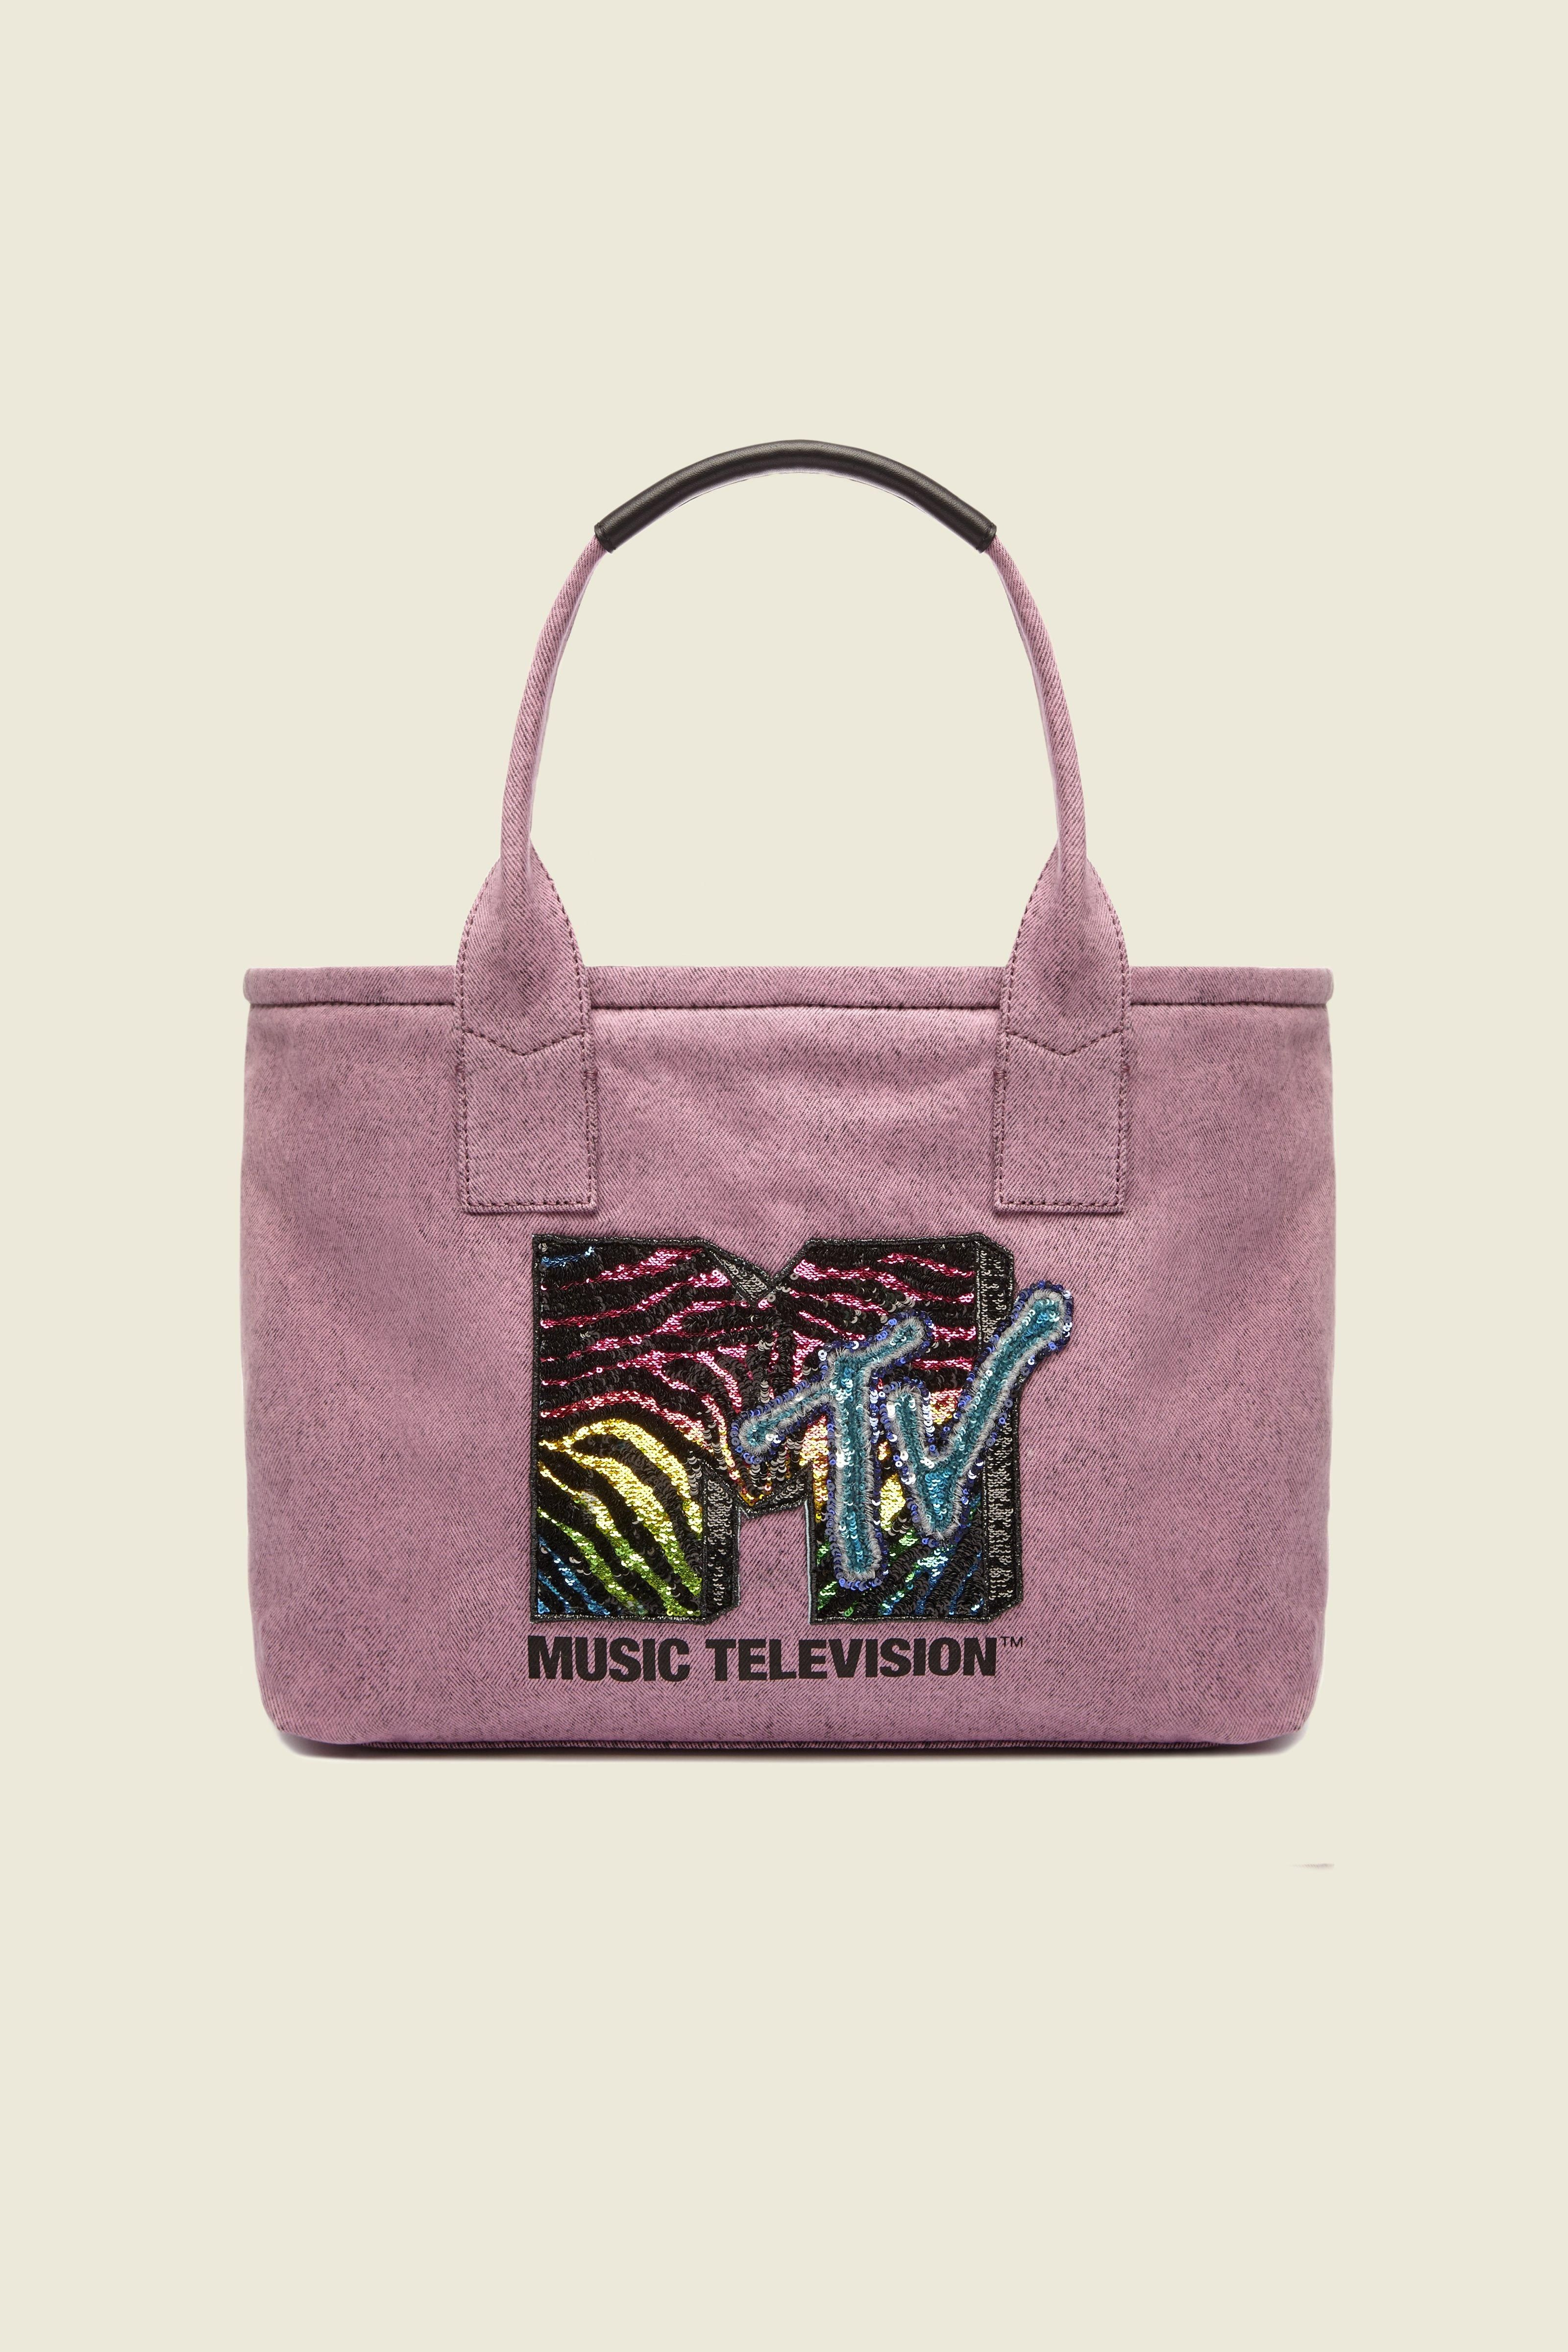 69bd3f37d041 MARC JACOBS Marc Jacobs X Mtv Tote.  marcjacobs  bags  hand bags  tote